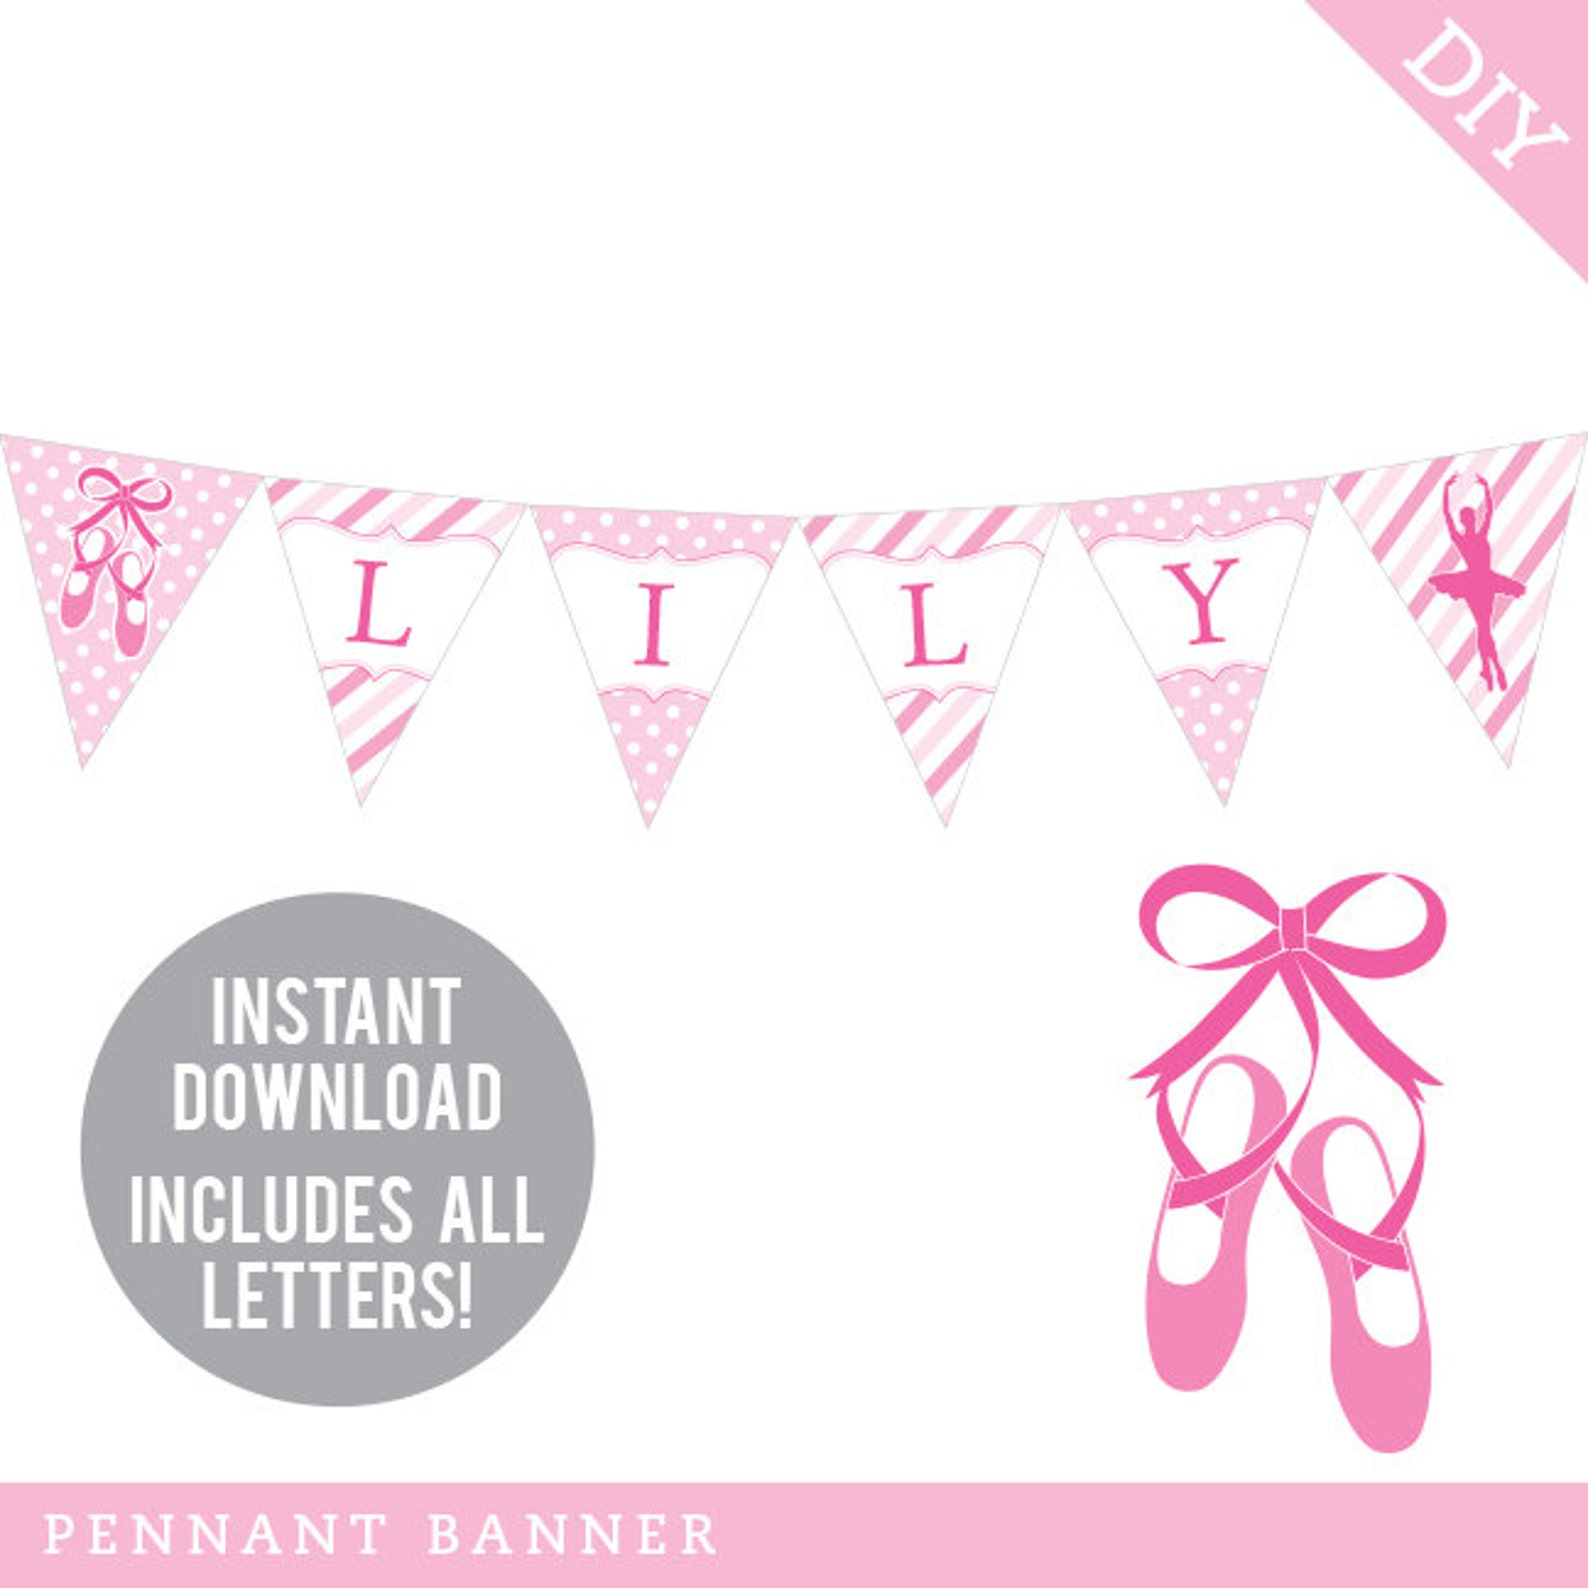 instant download ballet party - diy printable pennant banner - includes all letters, plus ages 1-18